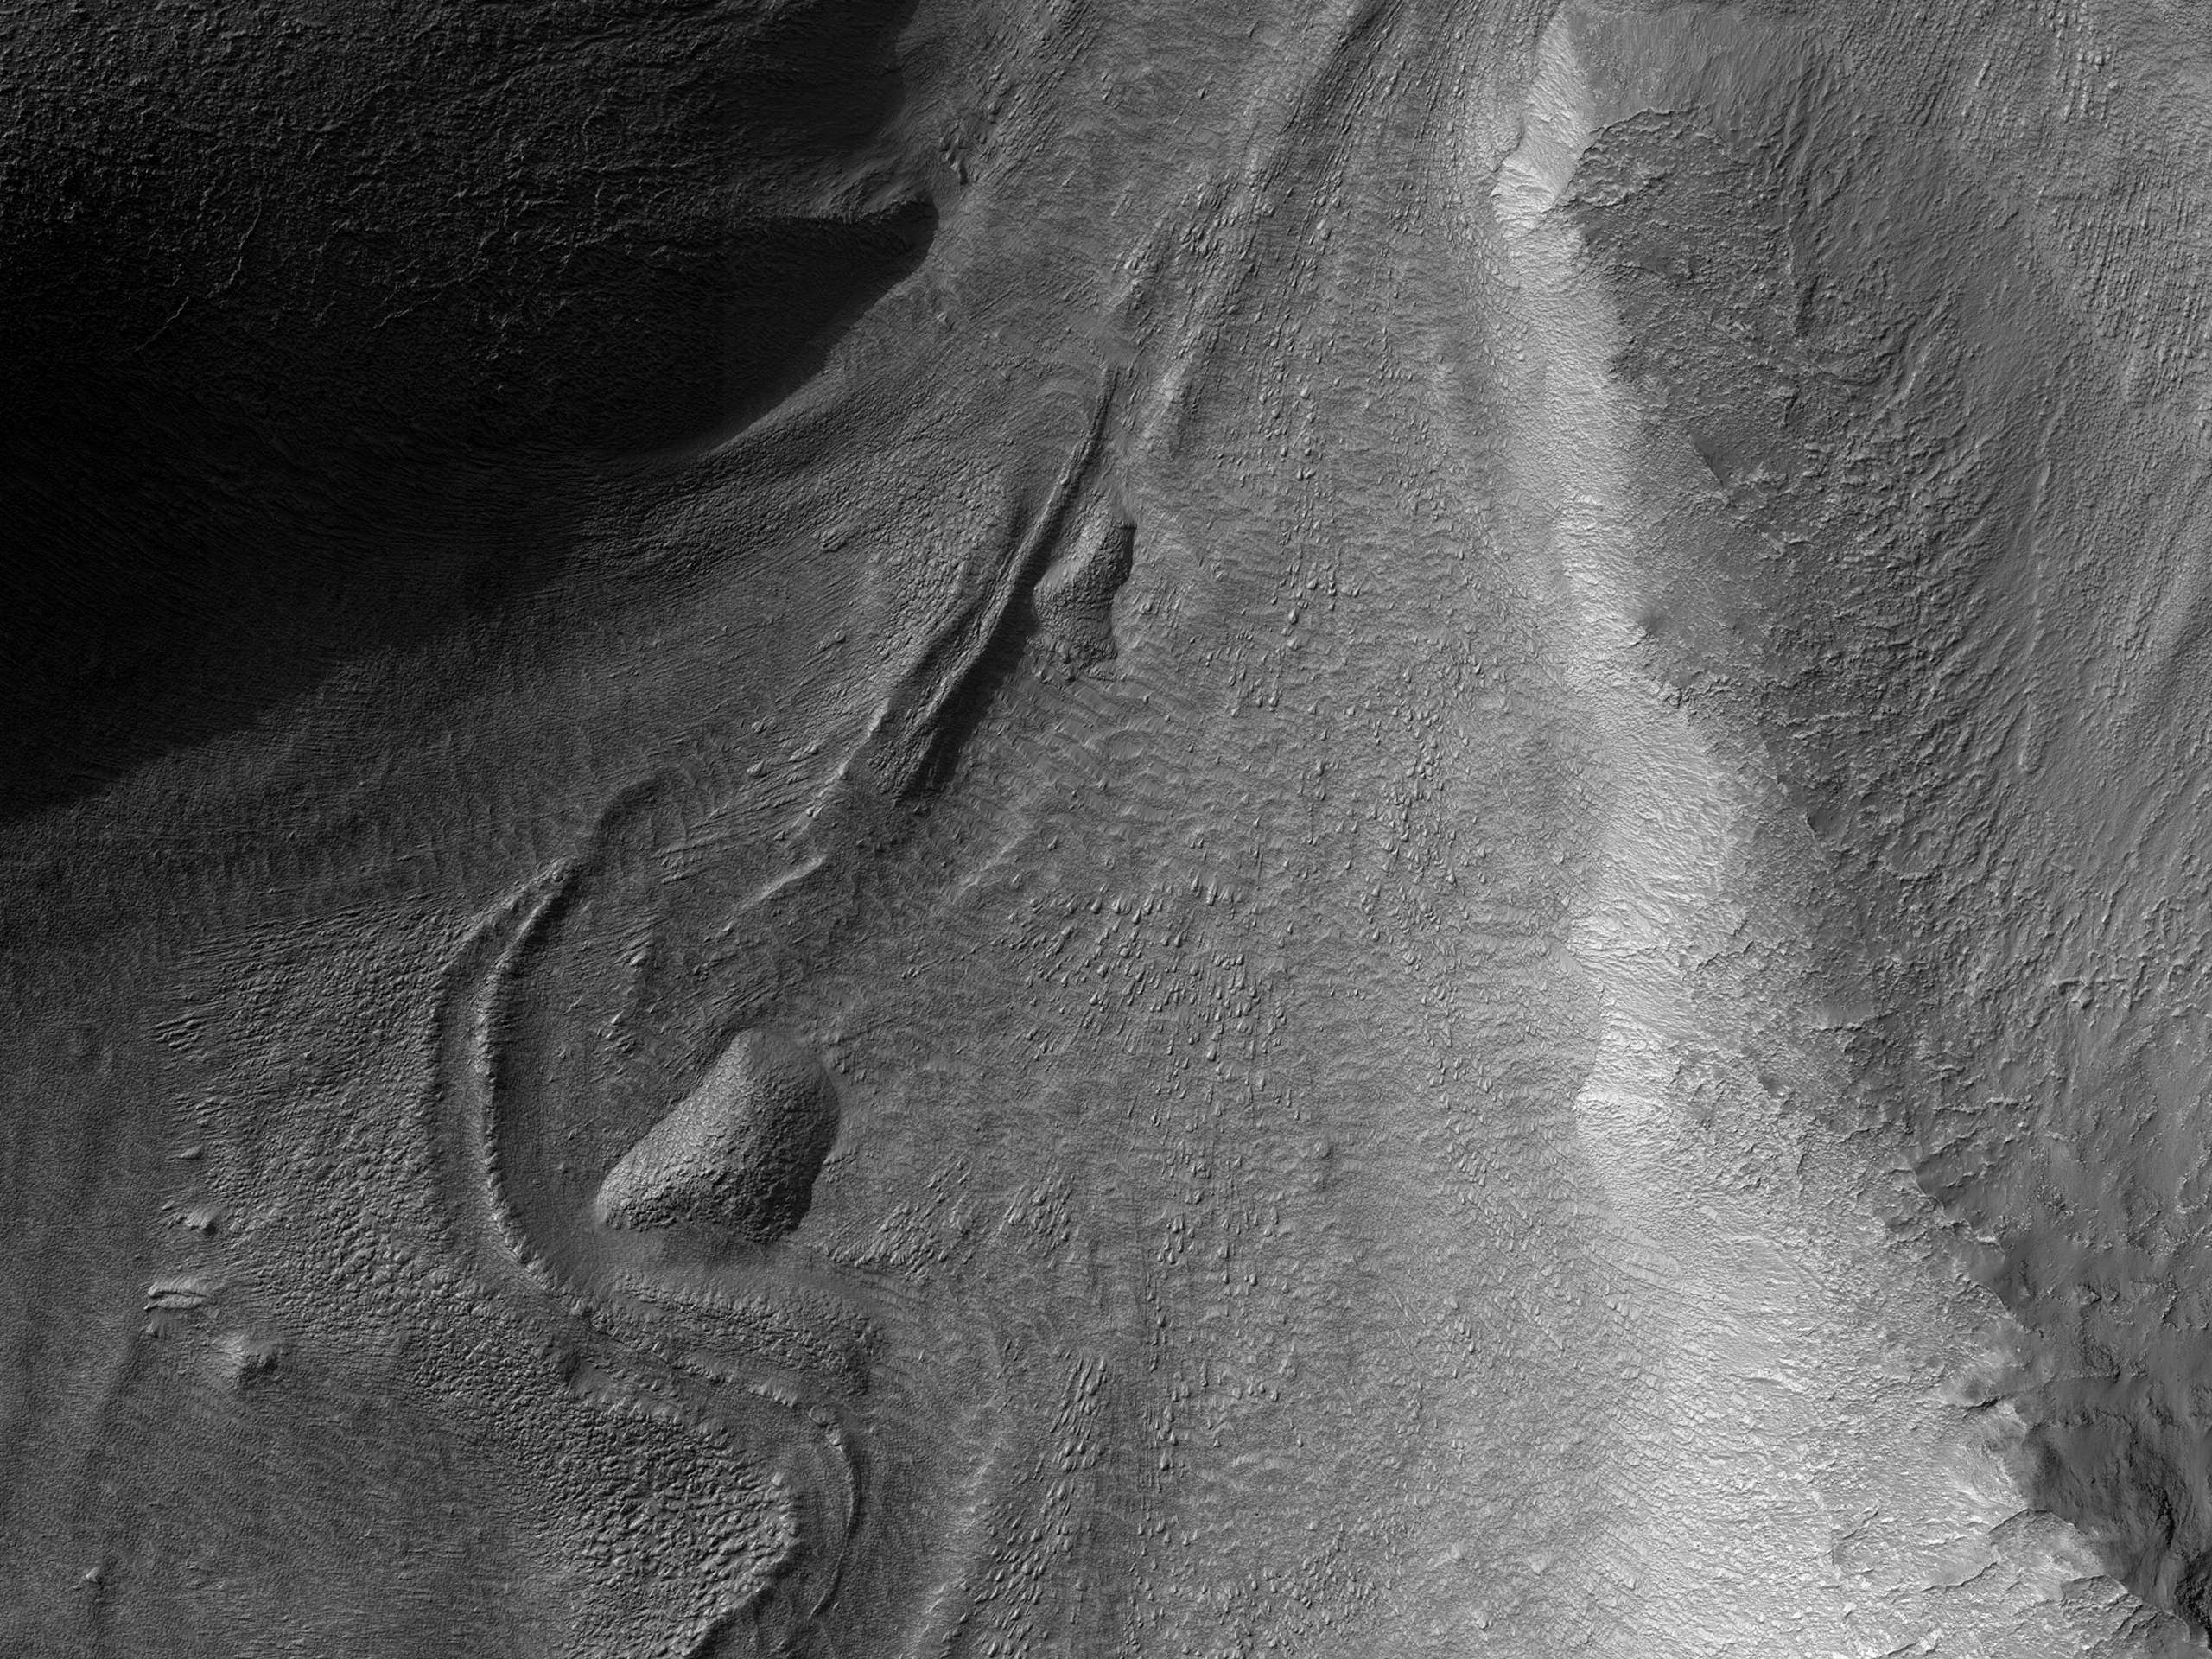 Flow into a Crater near Reull Vallis